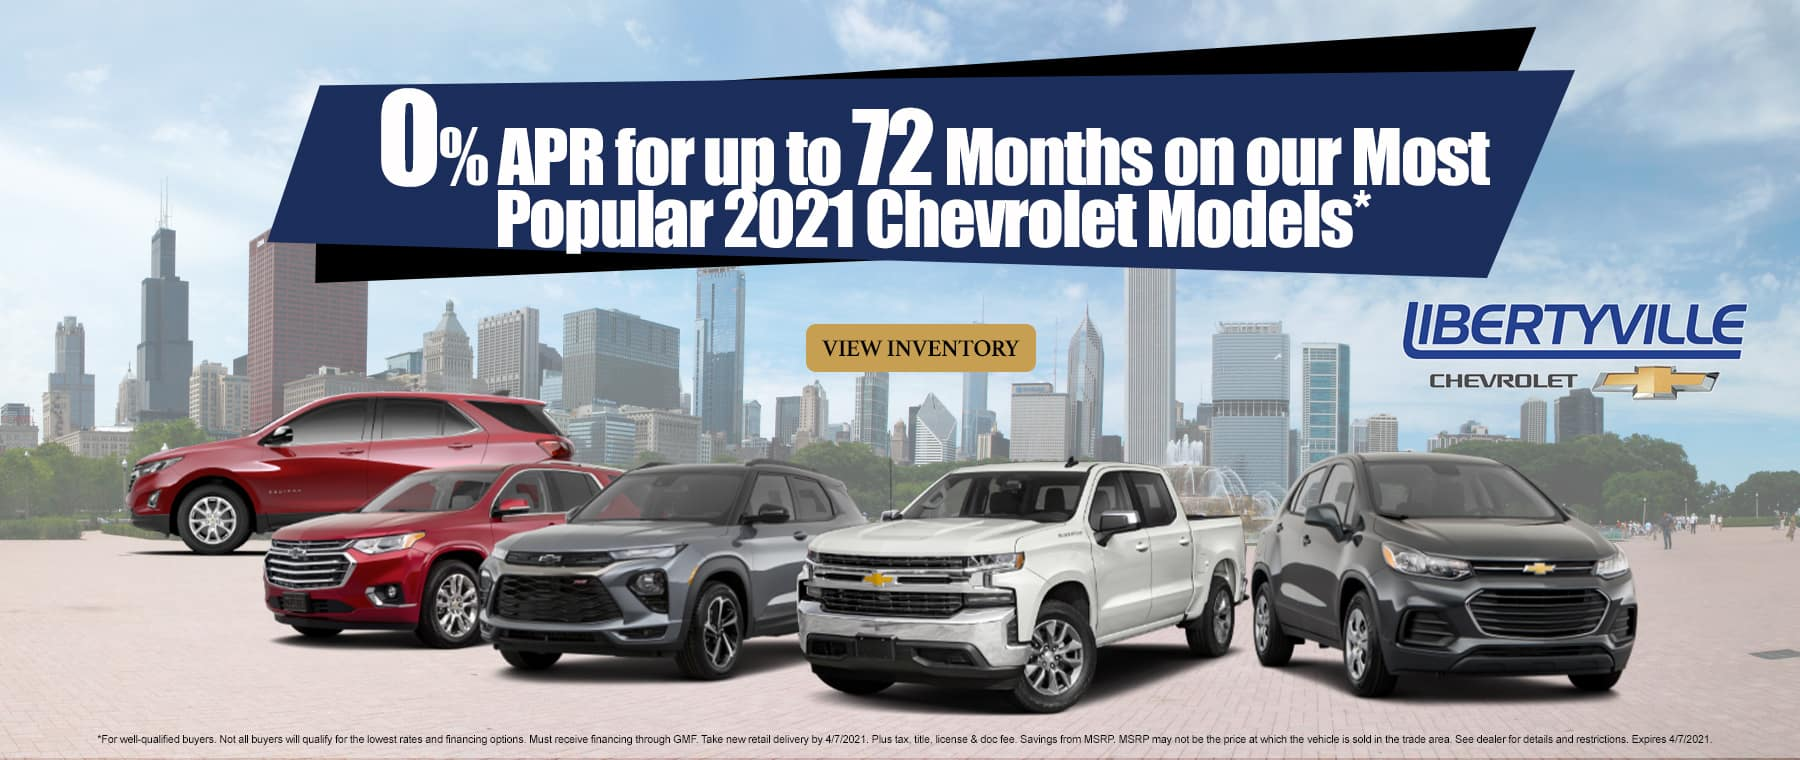 Welcome To Libertyville Chevrolet Inc In Libertyville Il